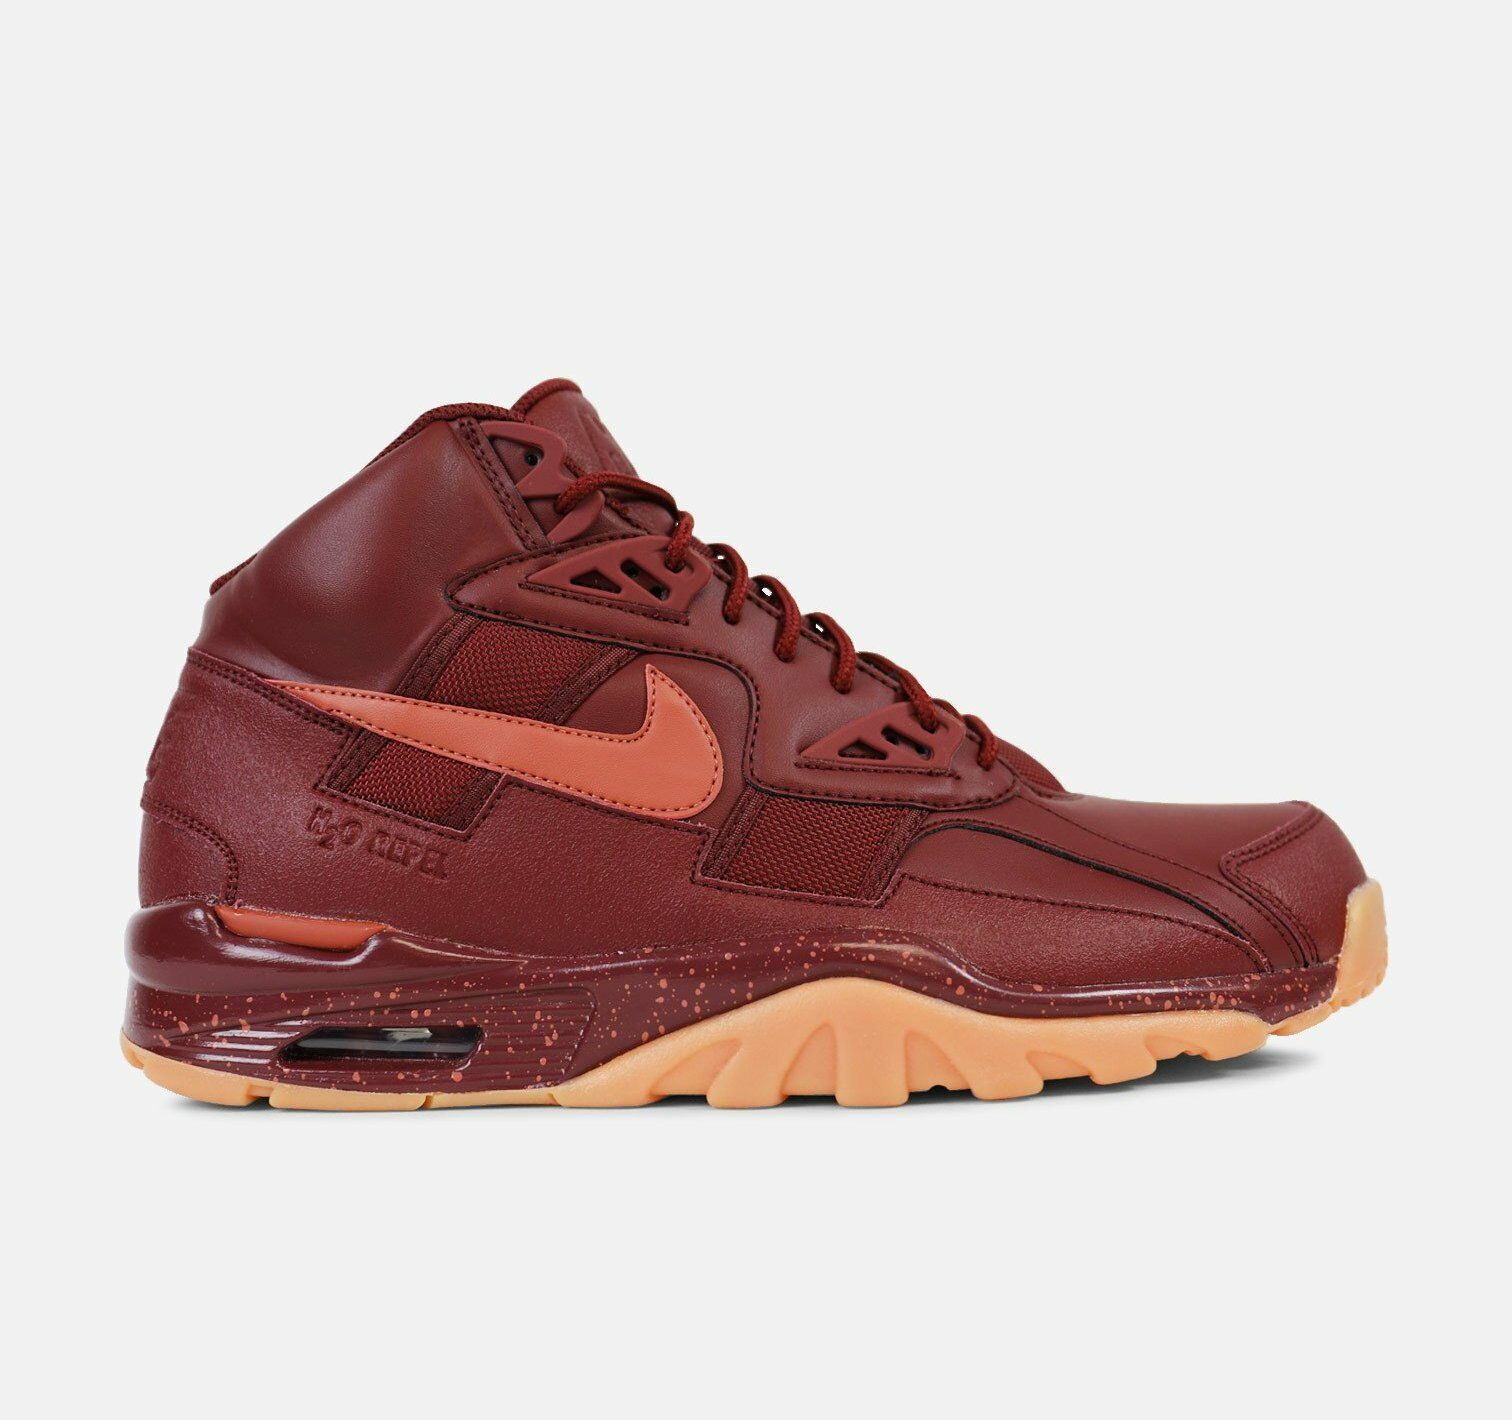 New Nike Men's Air Trainer SC Winter Shoes (AA1120-600)  Dk Team Red/Dusty Peach